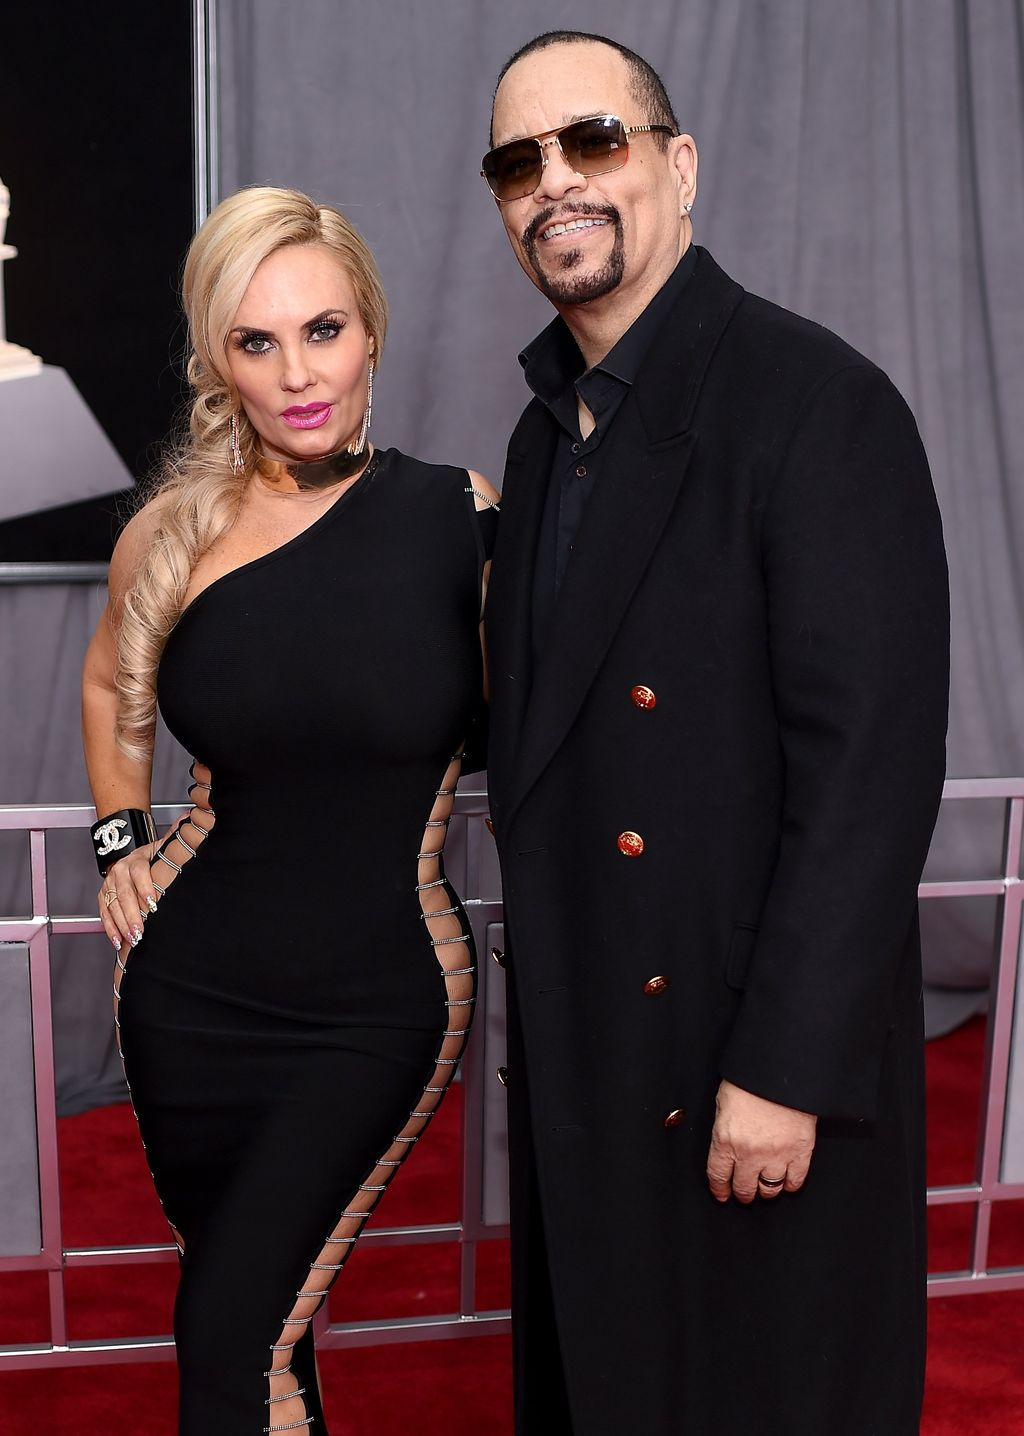 Coco Austin and Ice-T on January 28, 2018 in New York City | Source: Getty Images